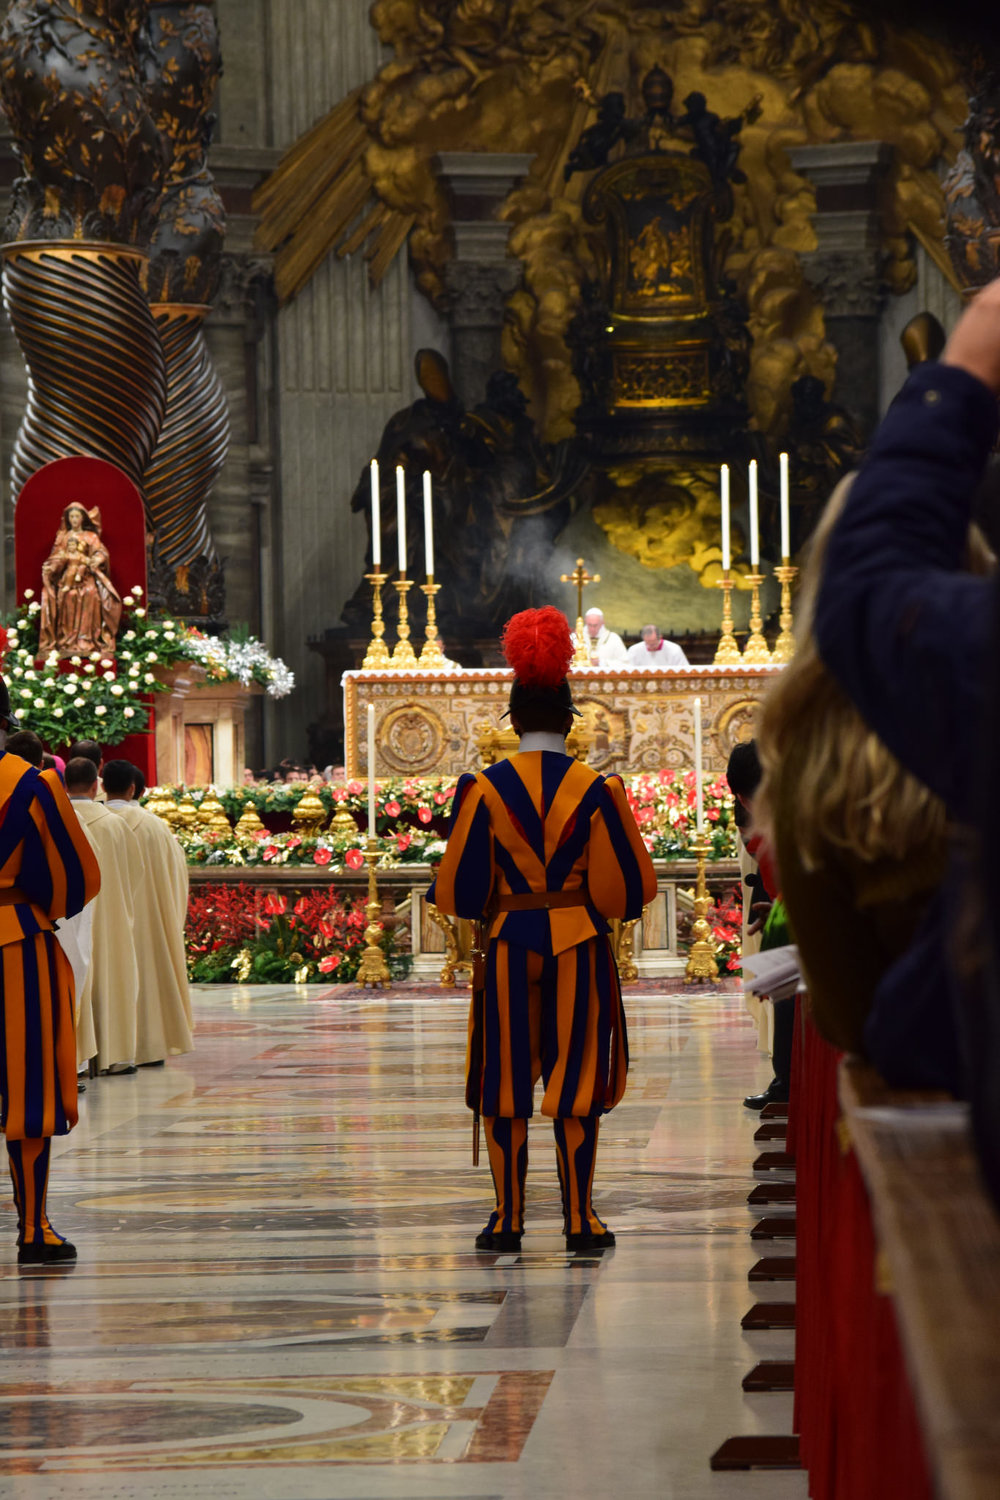 Midnight Mass in St. Peter's Basilica